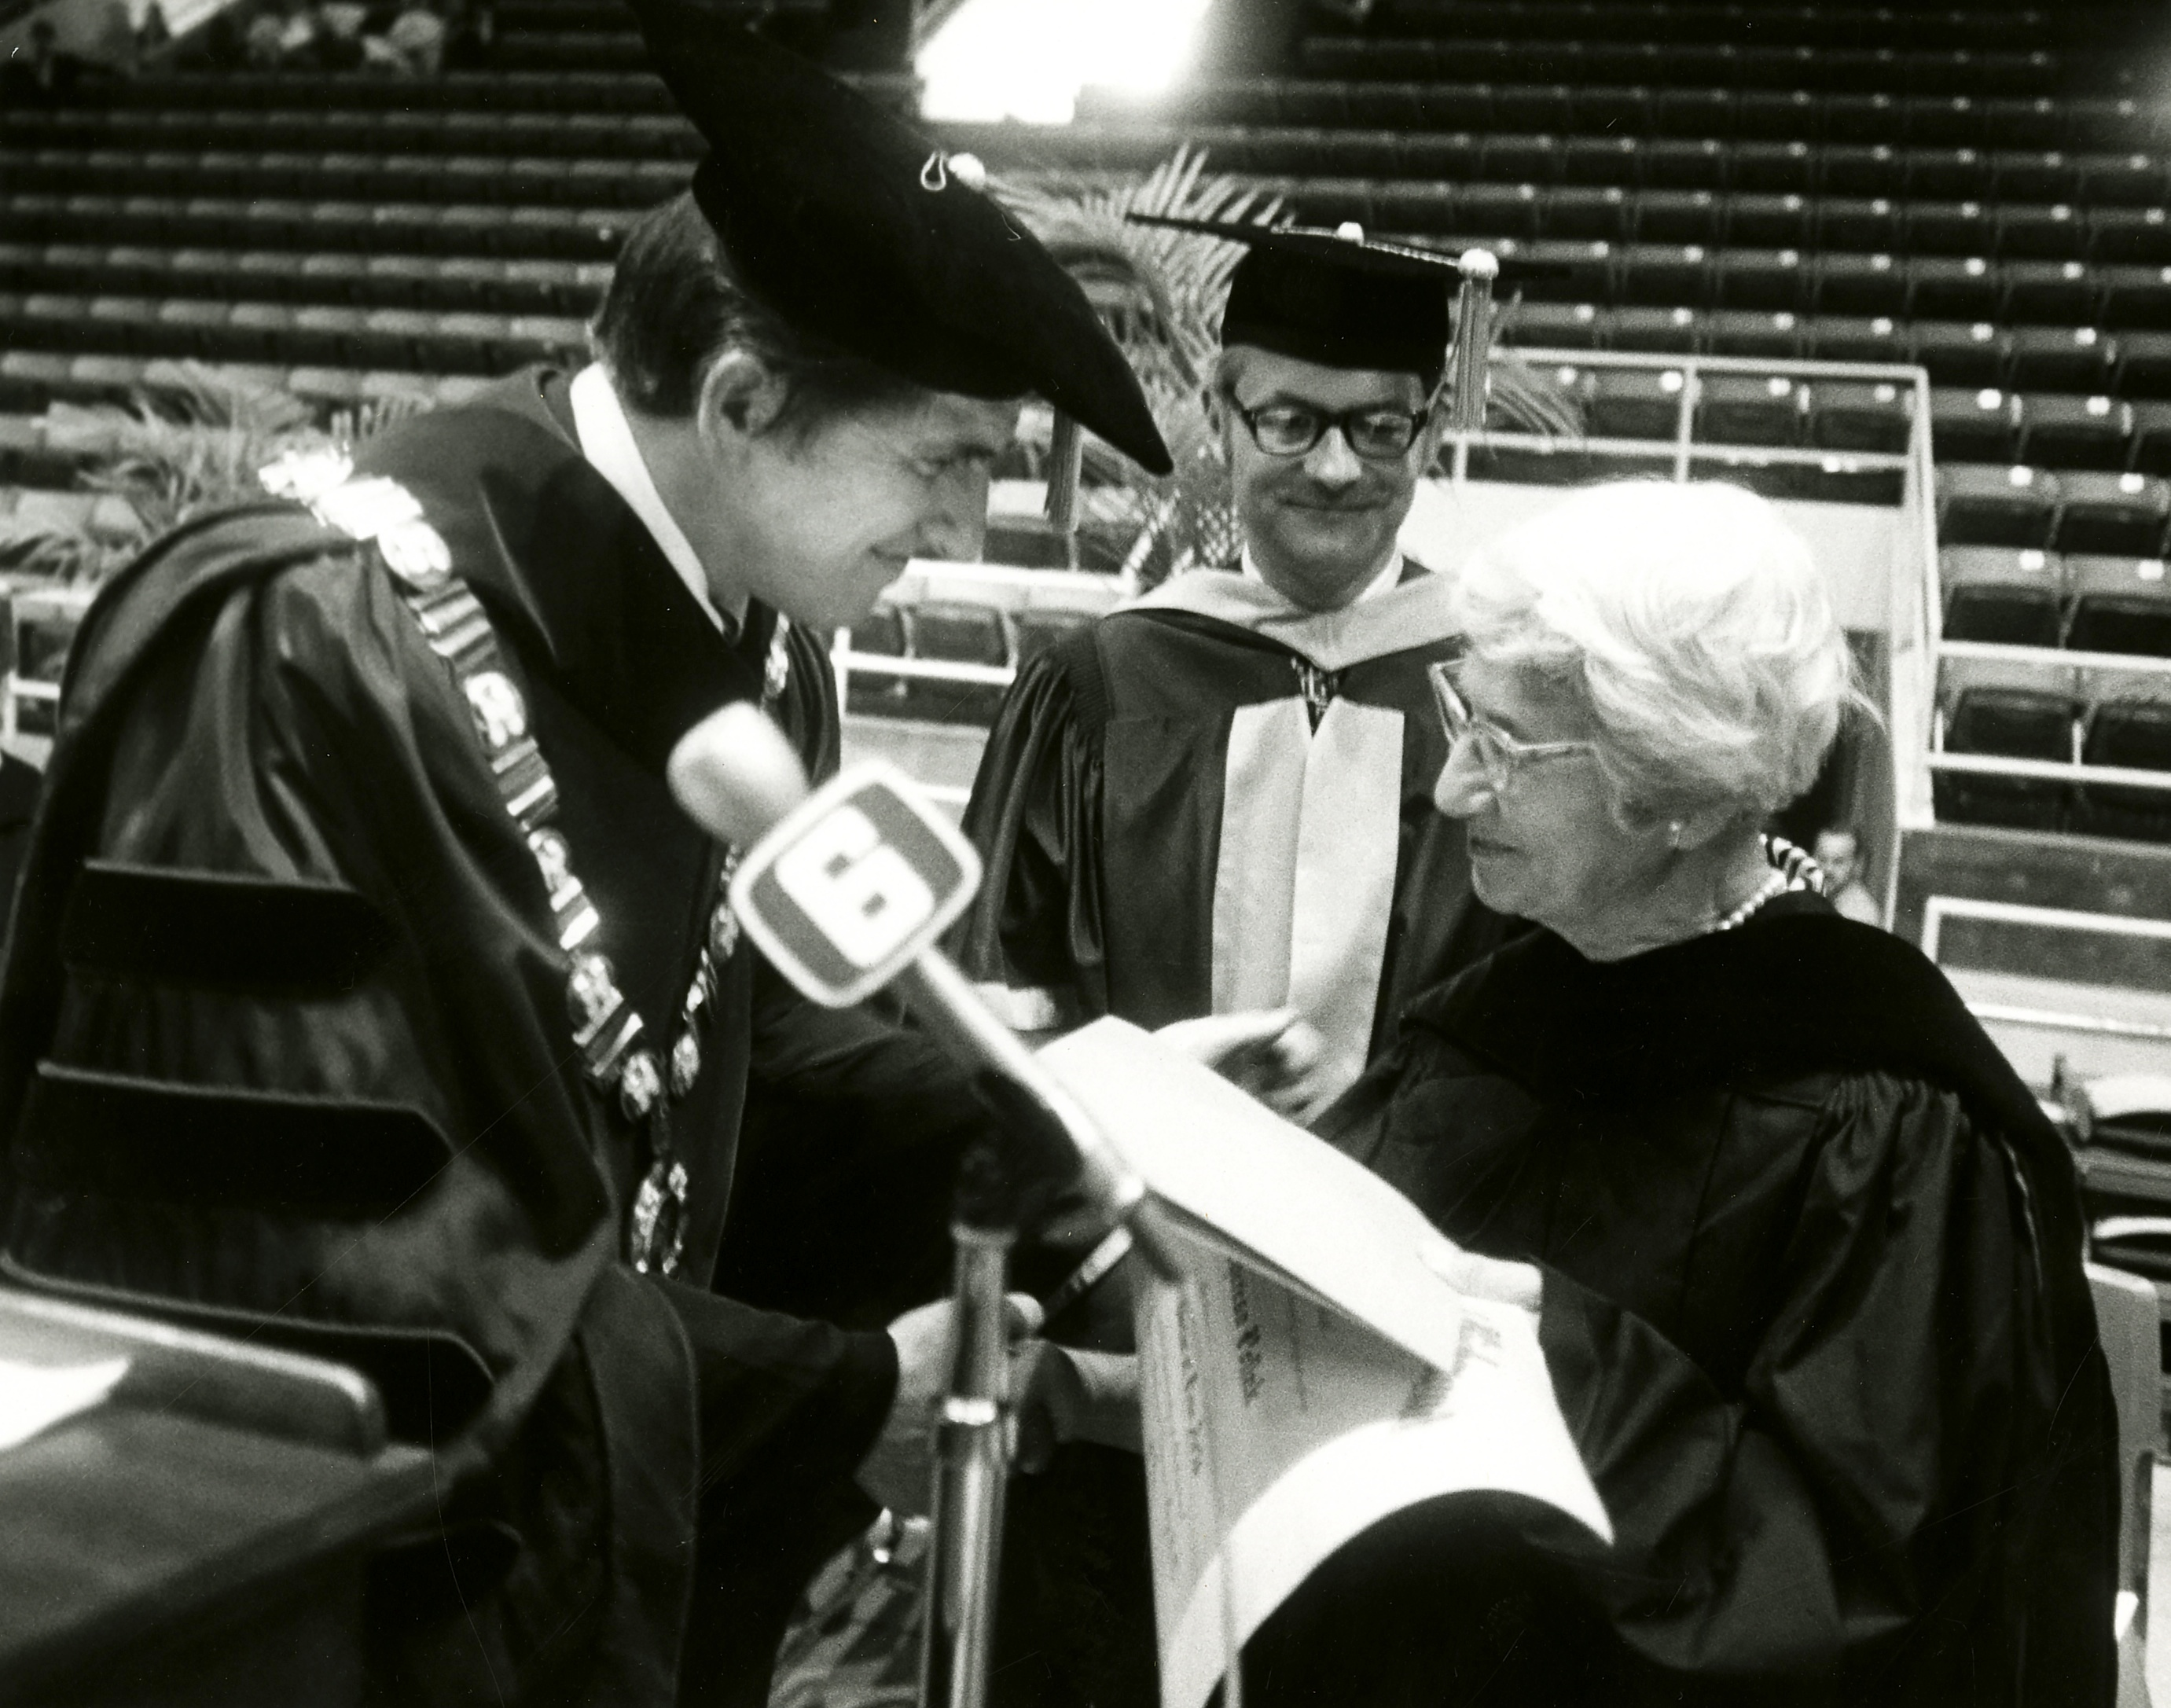 M5_B19_Correspondence from Westhampton_Photo of Pollak receiving Doctorate_300ppi.jpg